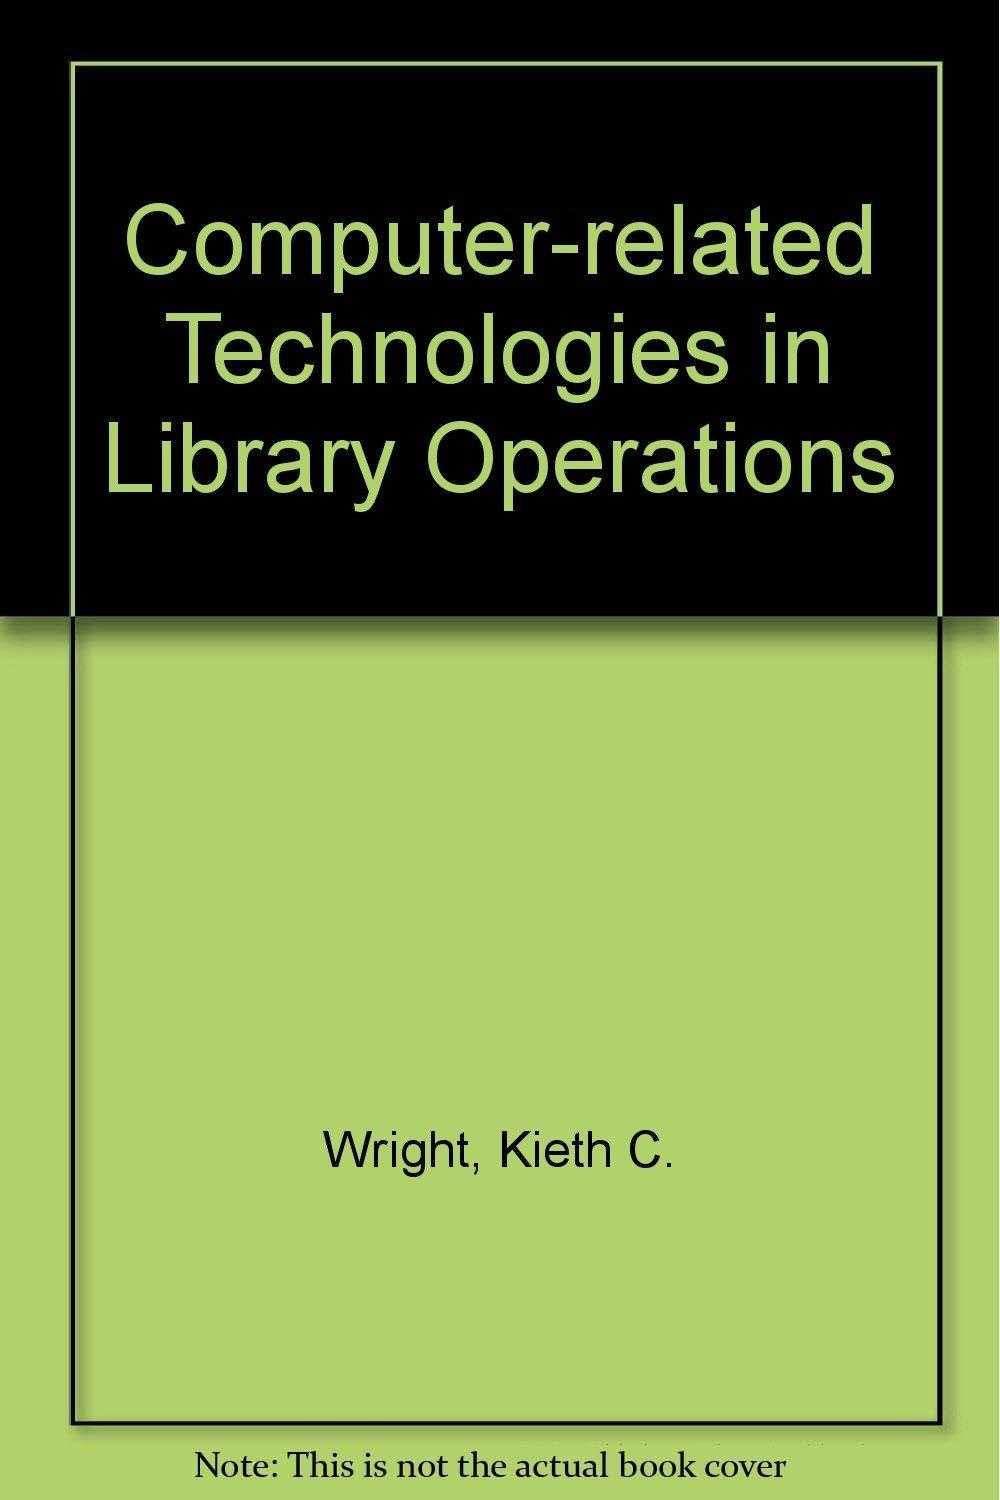 Computer-related Technologies in Library Operations, Wright, Kieth C.